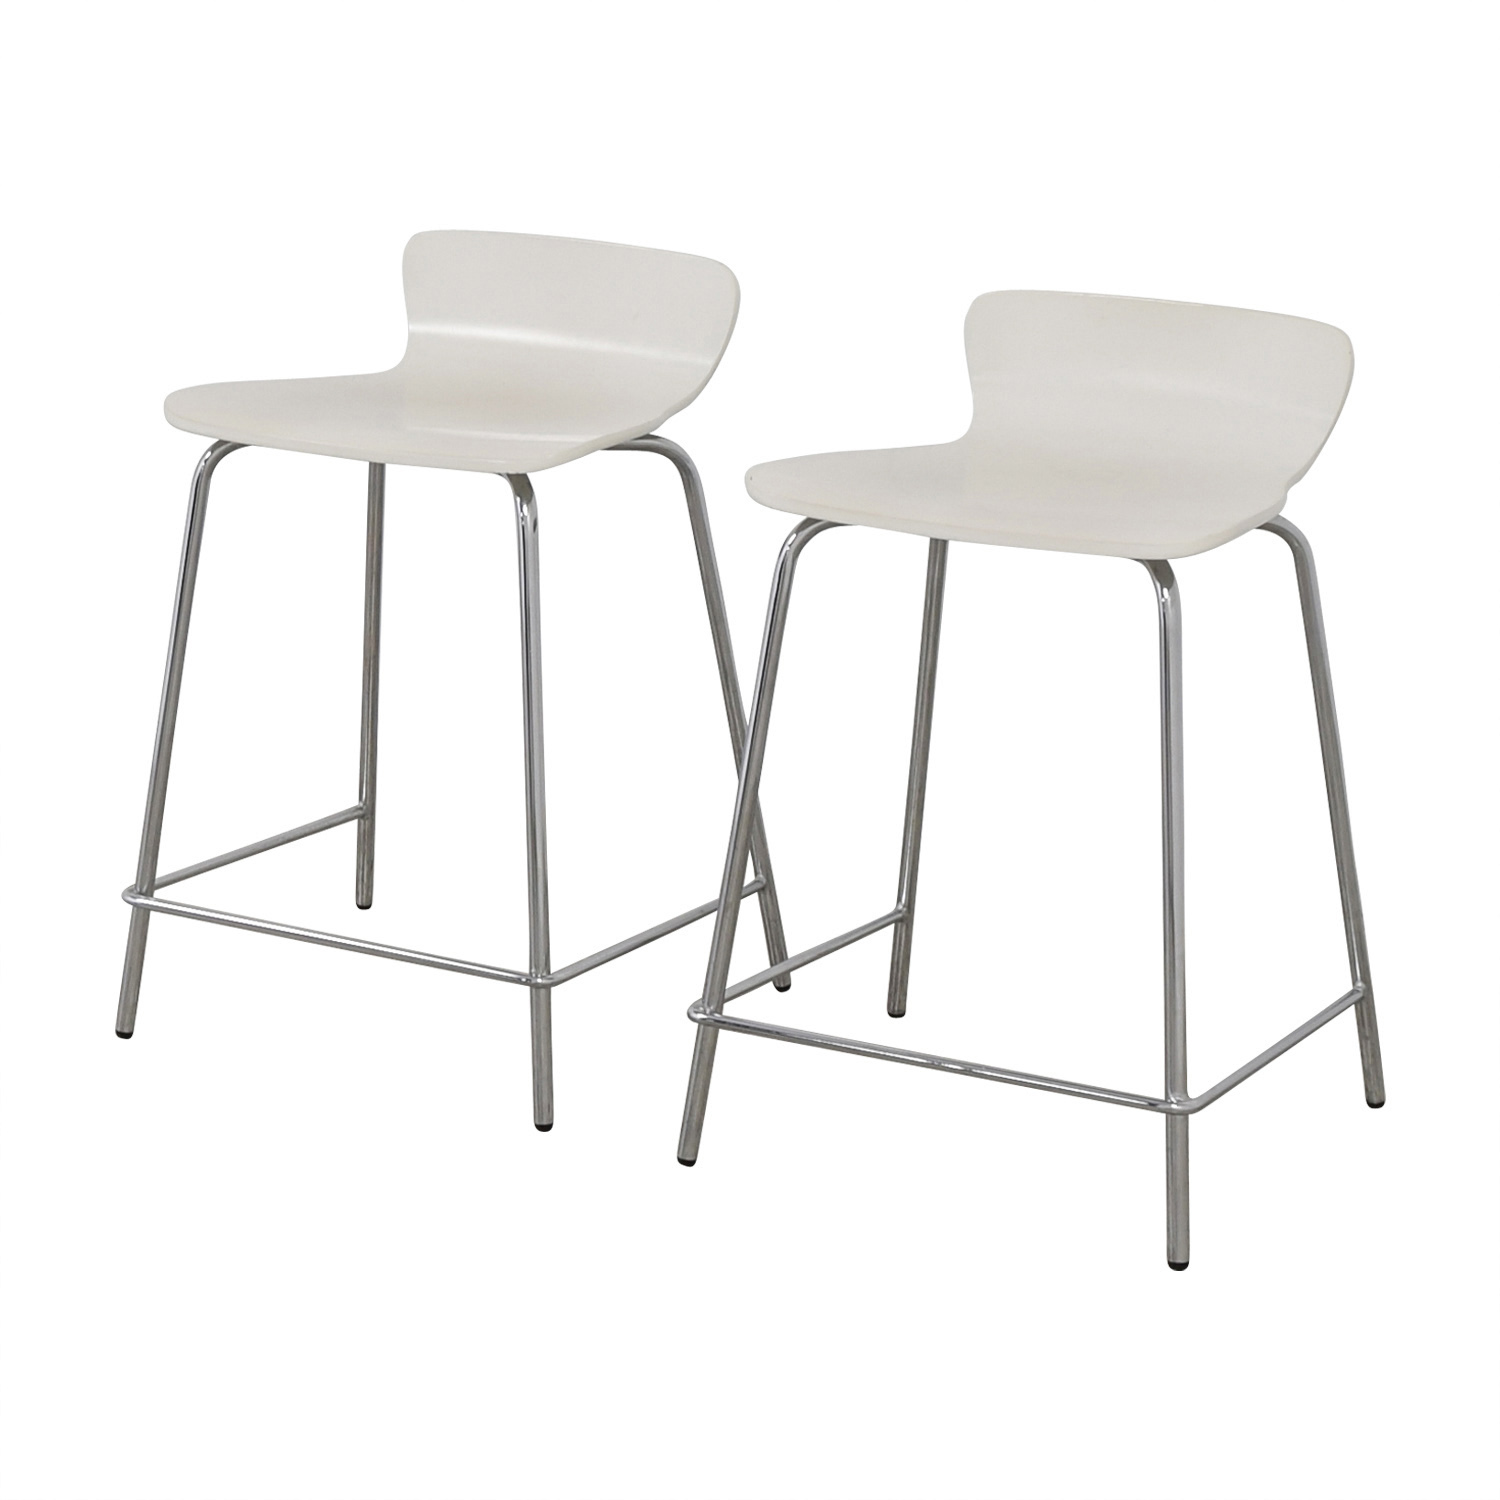 Superb 76 Off Crate Barrel Crate And Barrel Felix White Counter Stools Chairs Alphanode Cool Chair Designs And Ideas Alphanodeonline